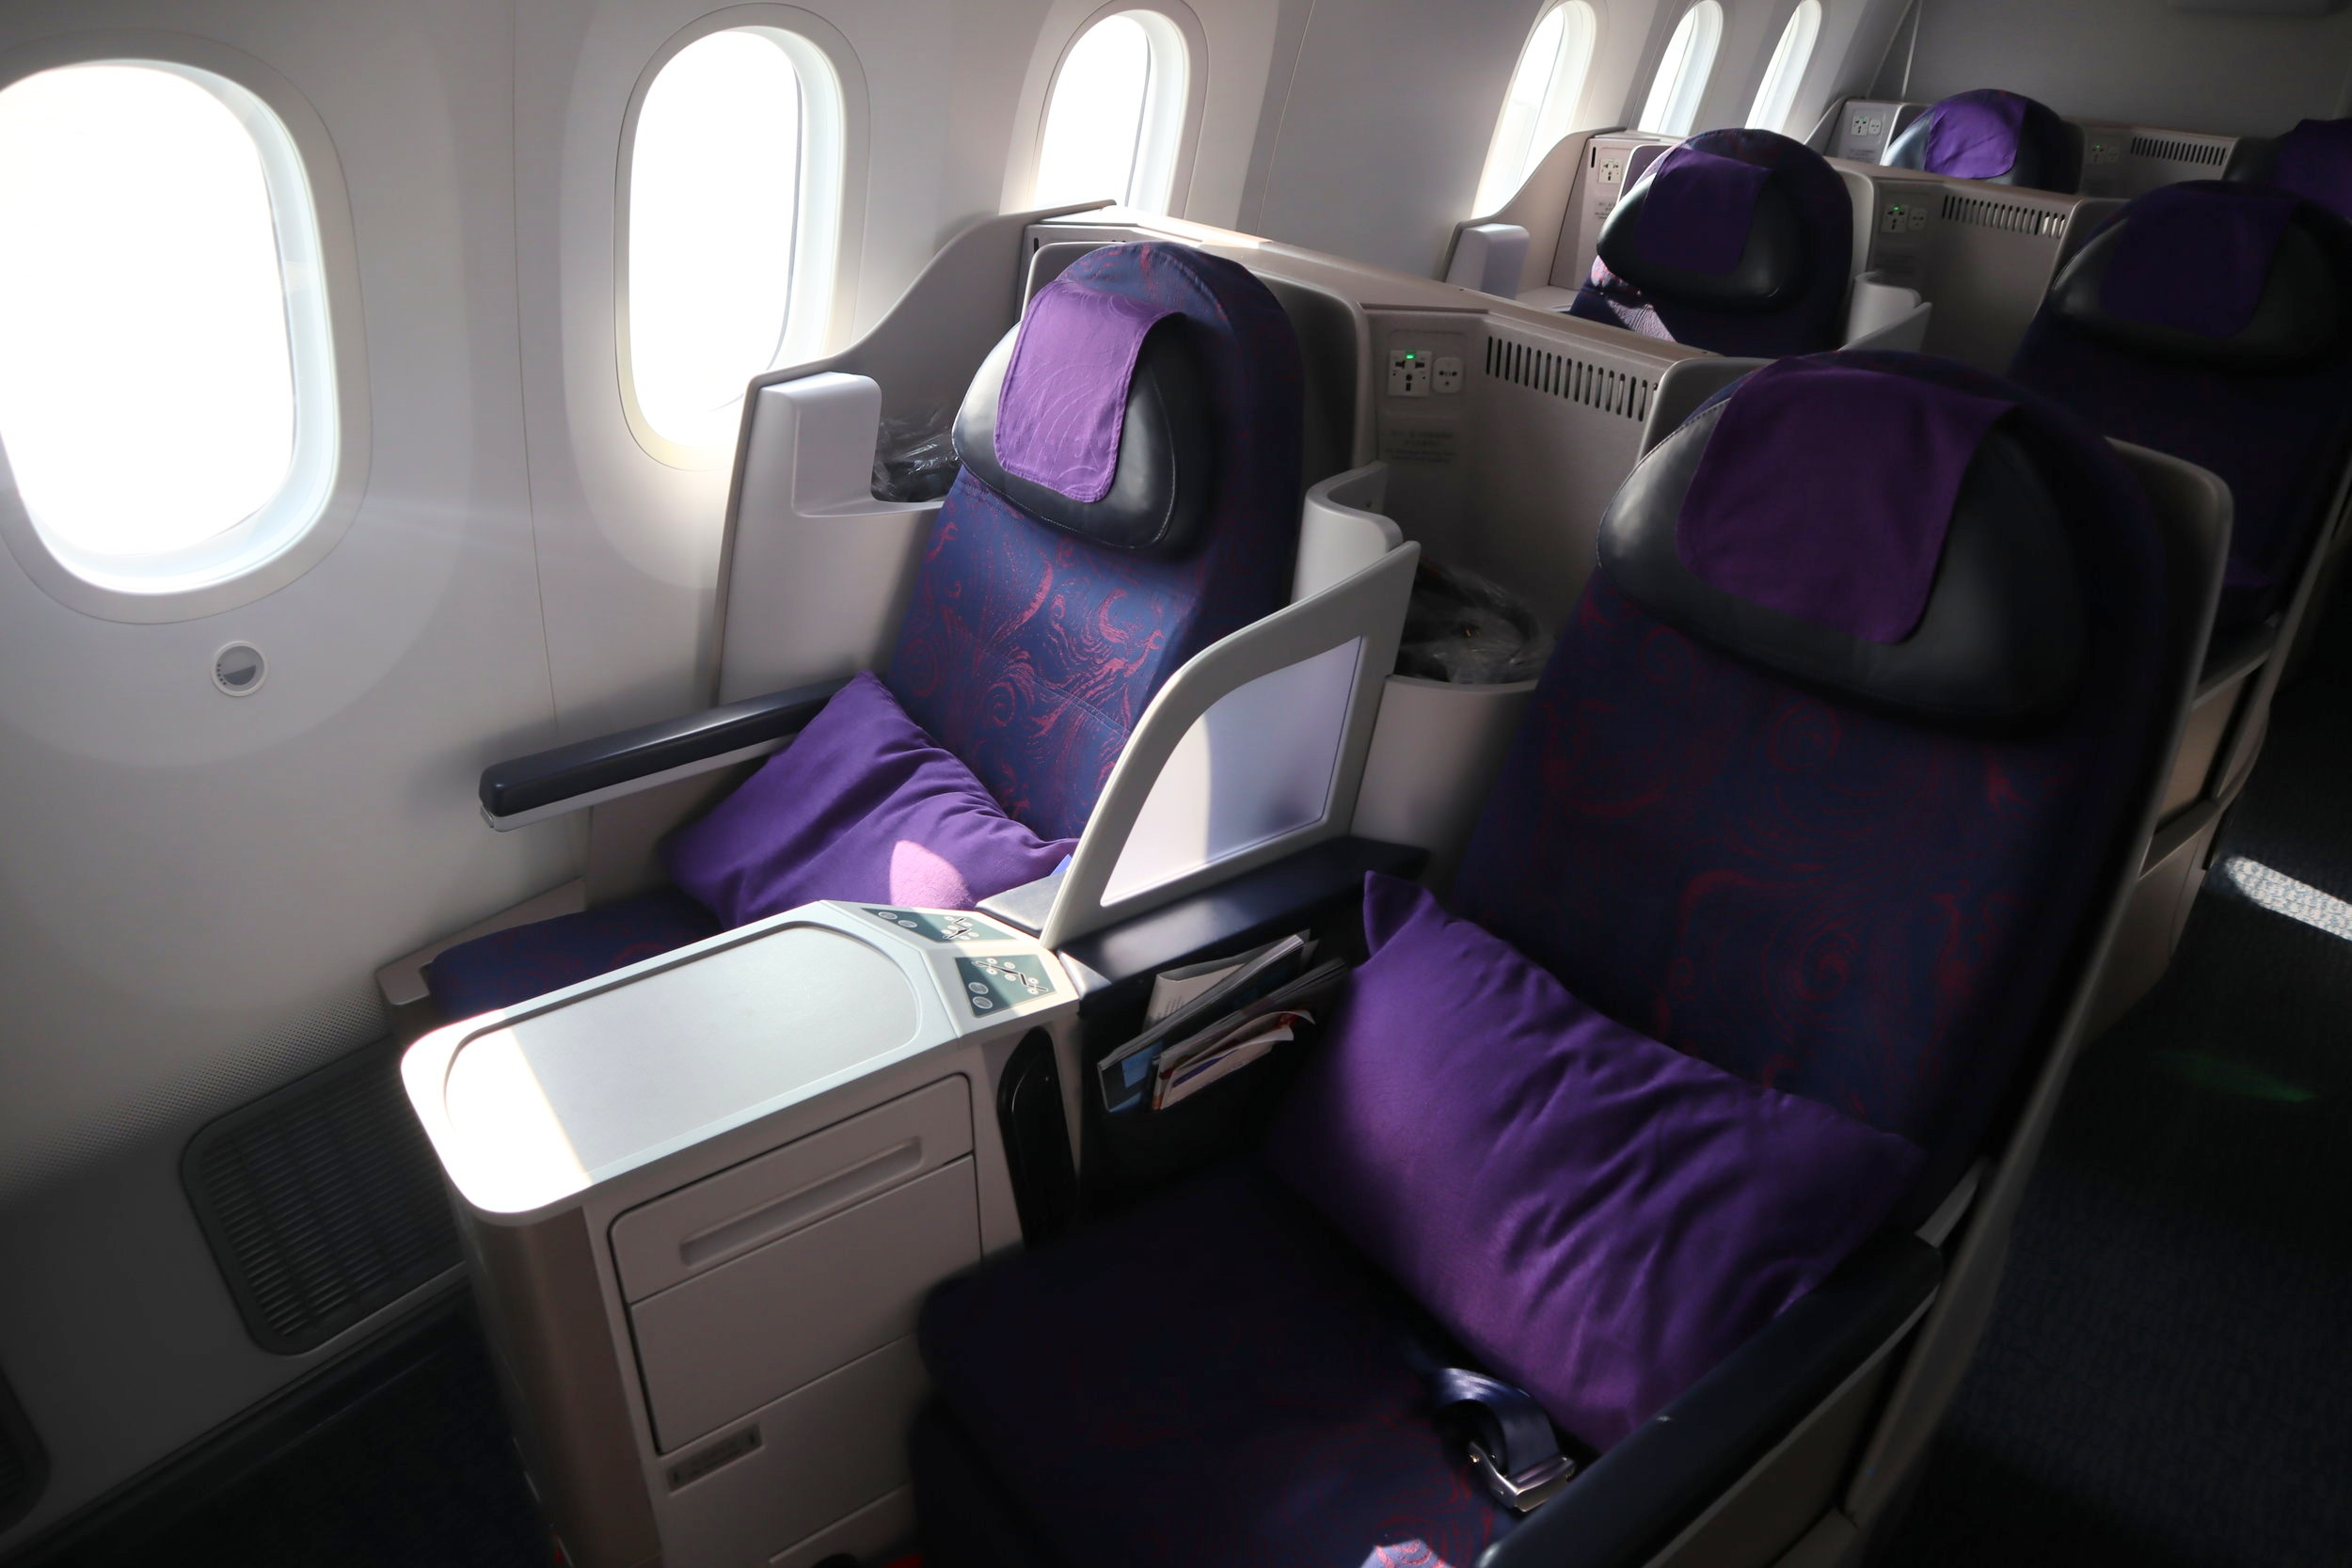 Air China business class – Seats 13J and 13L